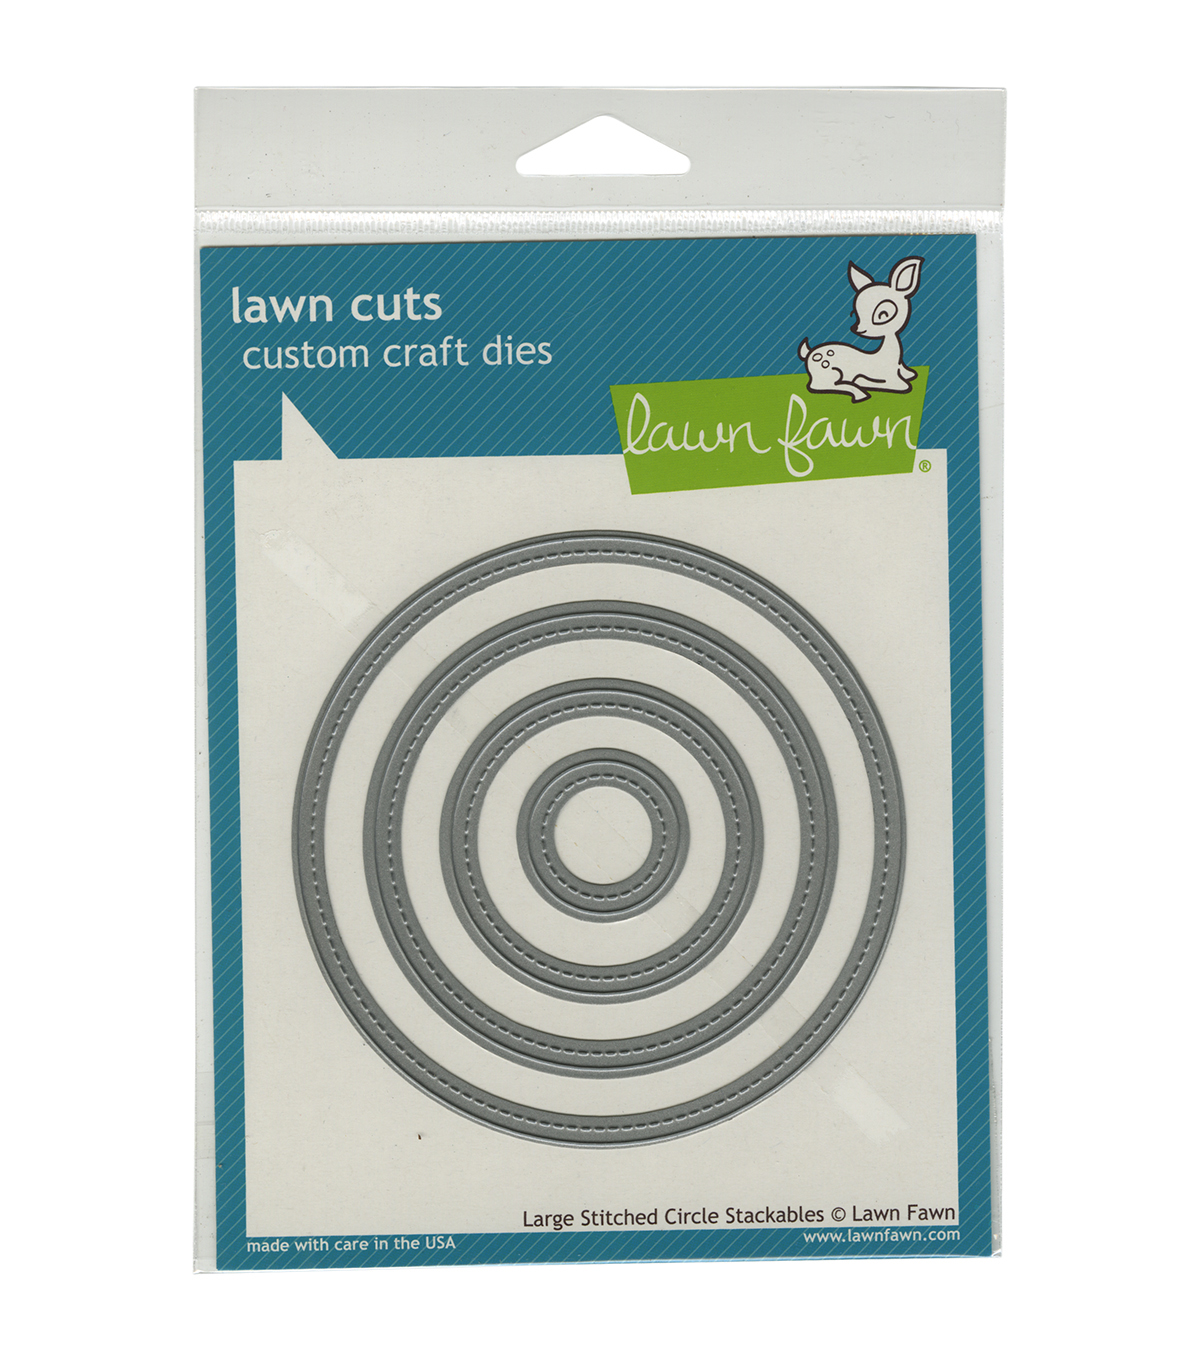 Lawn Fawn Lawn Cuts Custom Craft Die -Large Stitched Circle Stackables